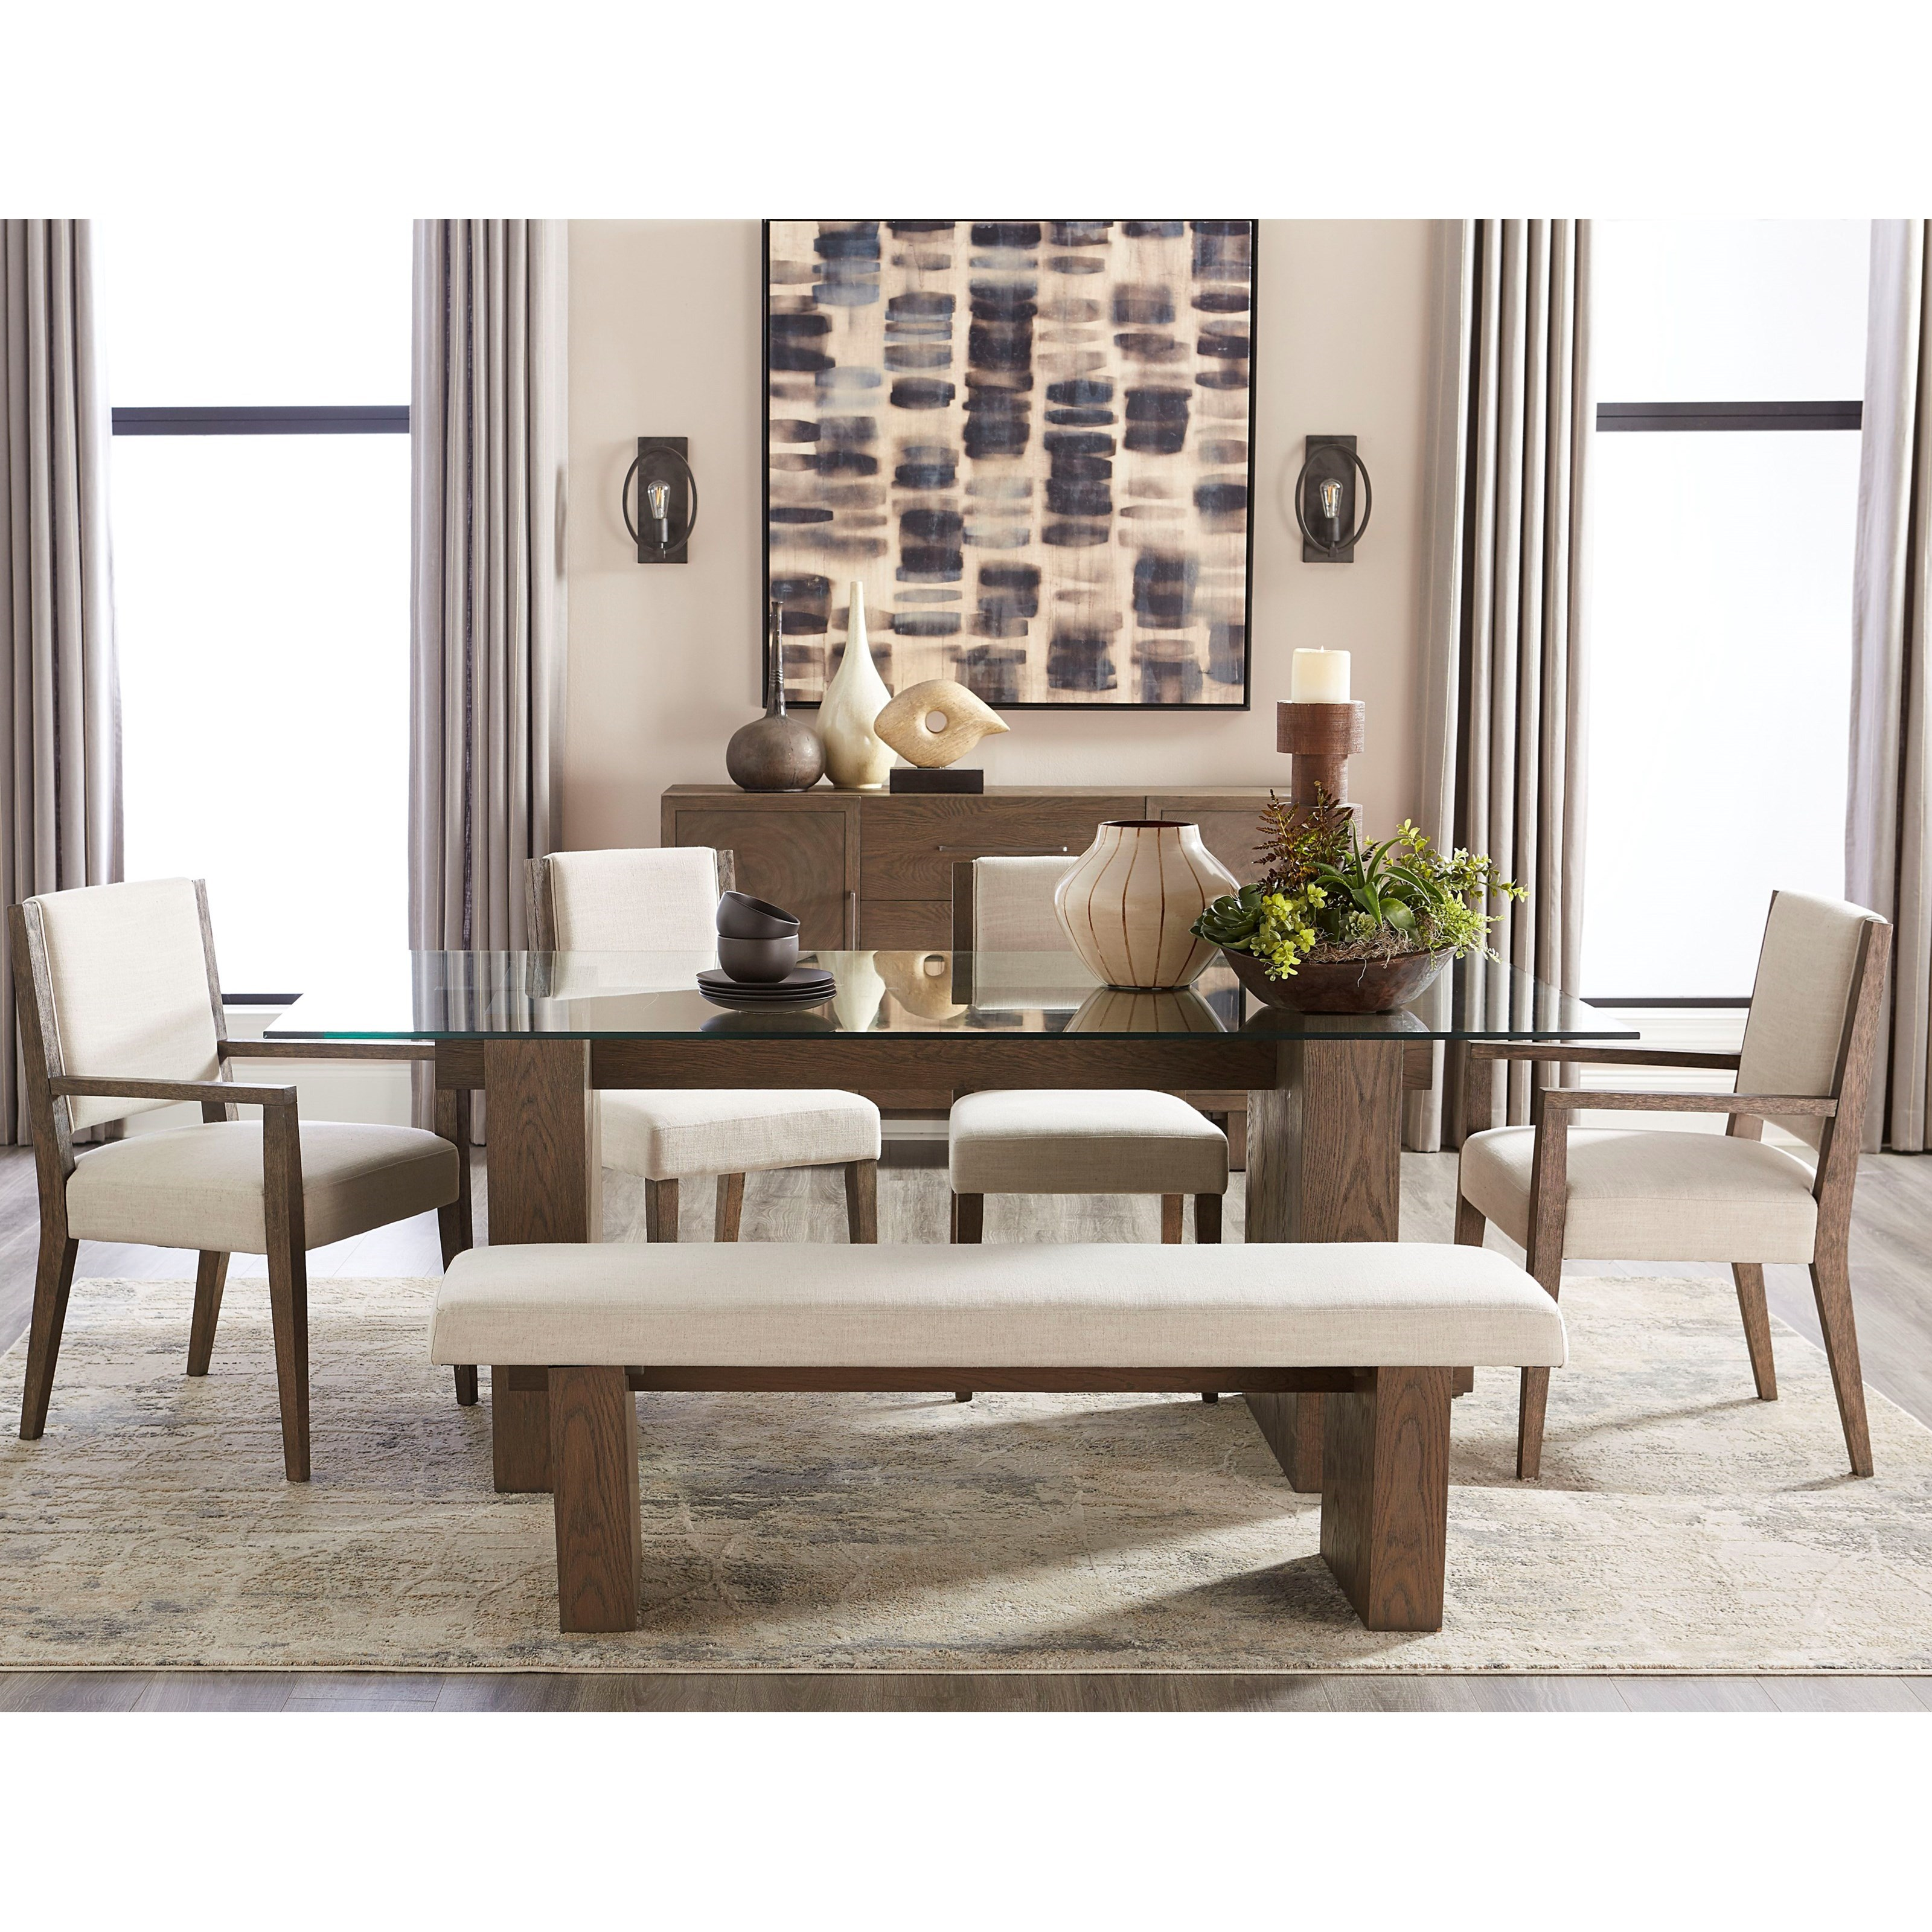 Oakland 6-Piece Dining Table Set with Bench by Modus International at A1 Furniture & Mattress